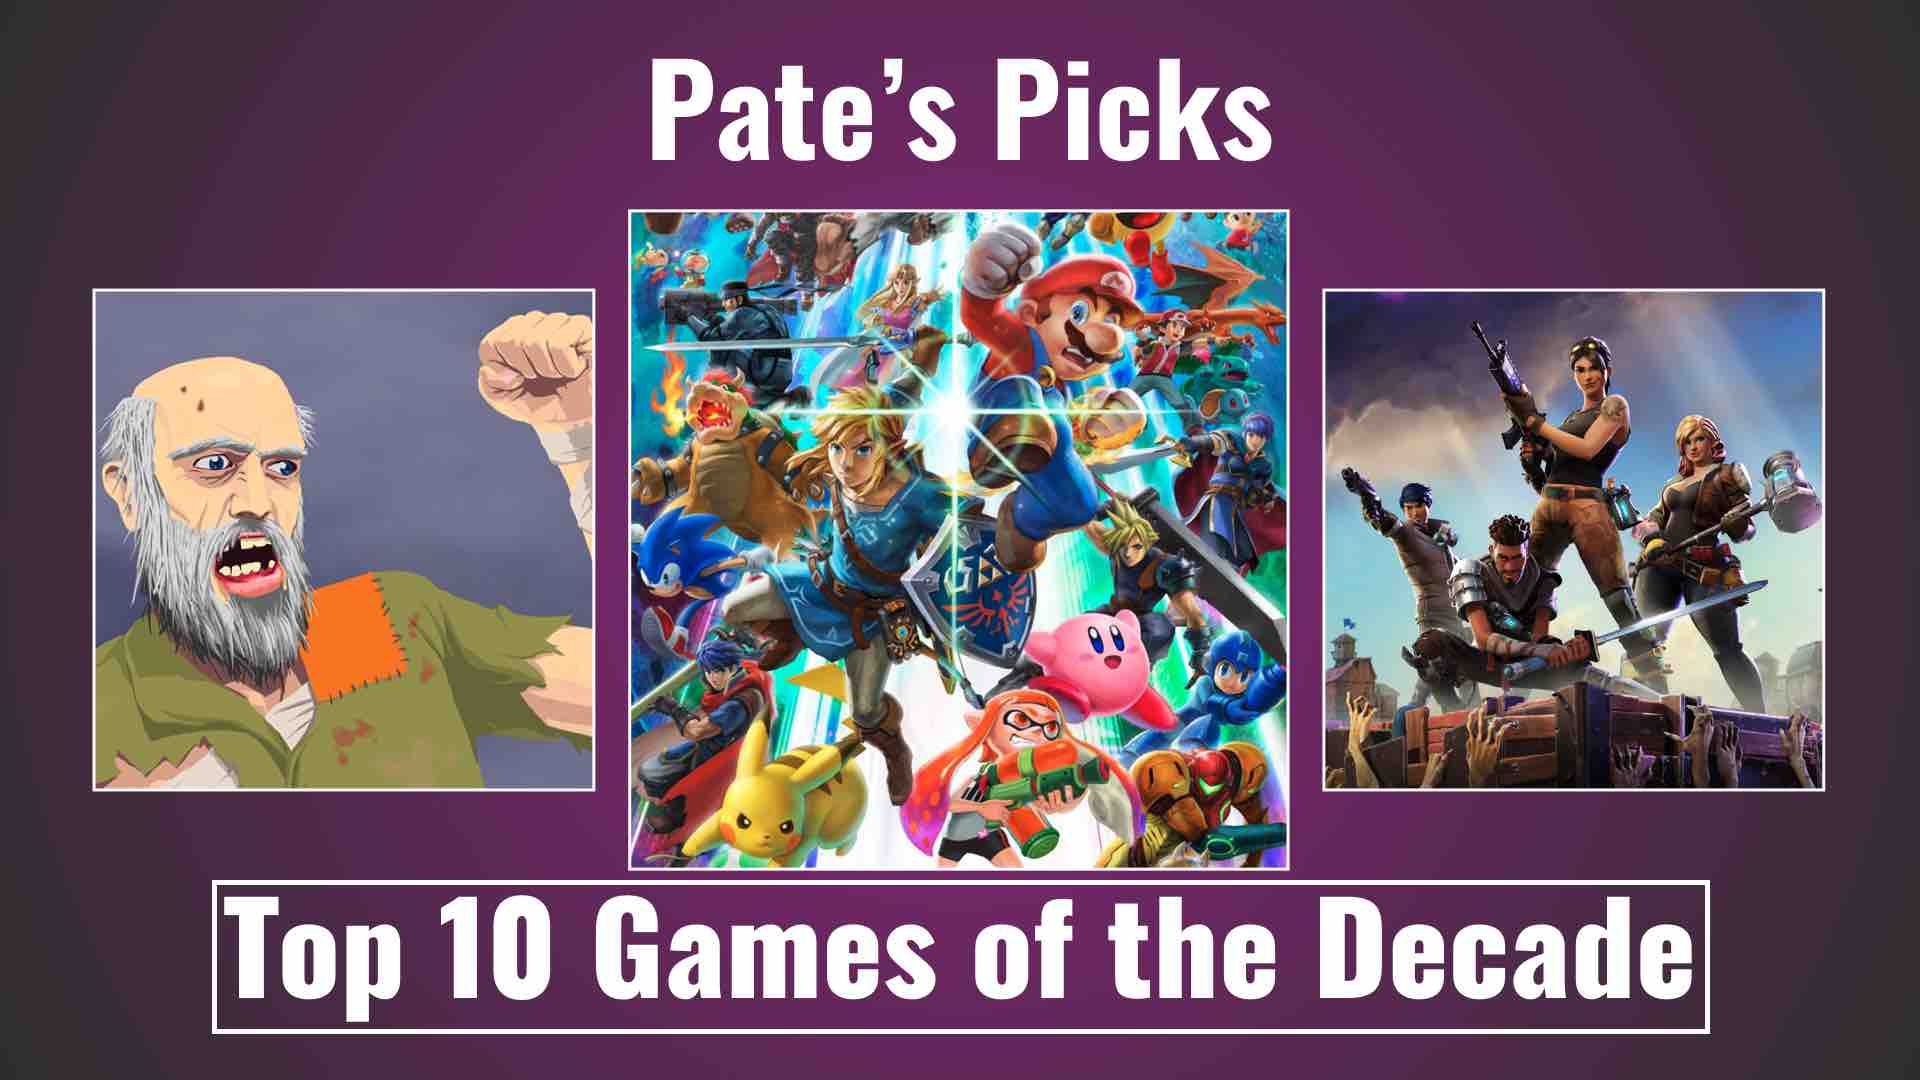 Pate's Picks for Top 10 Games of the Decade